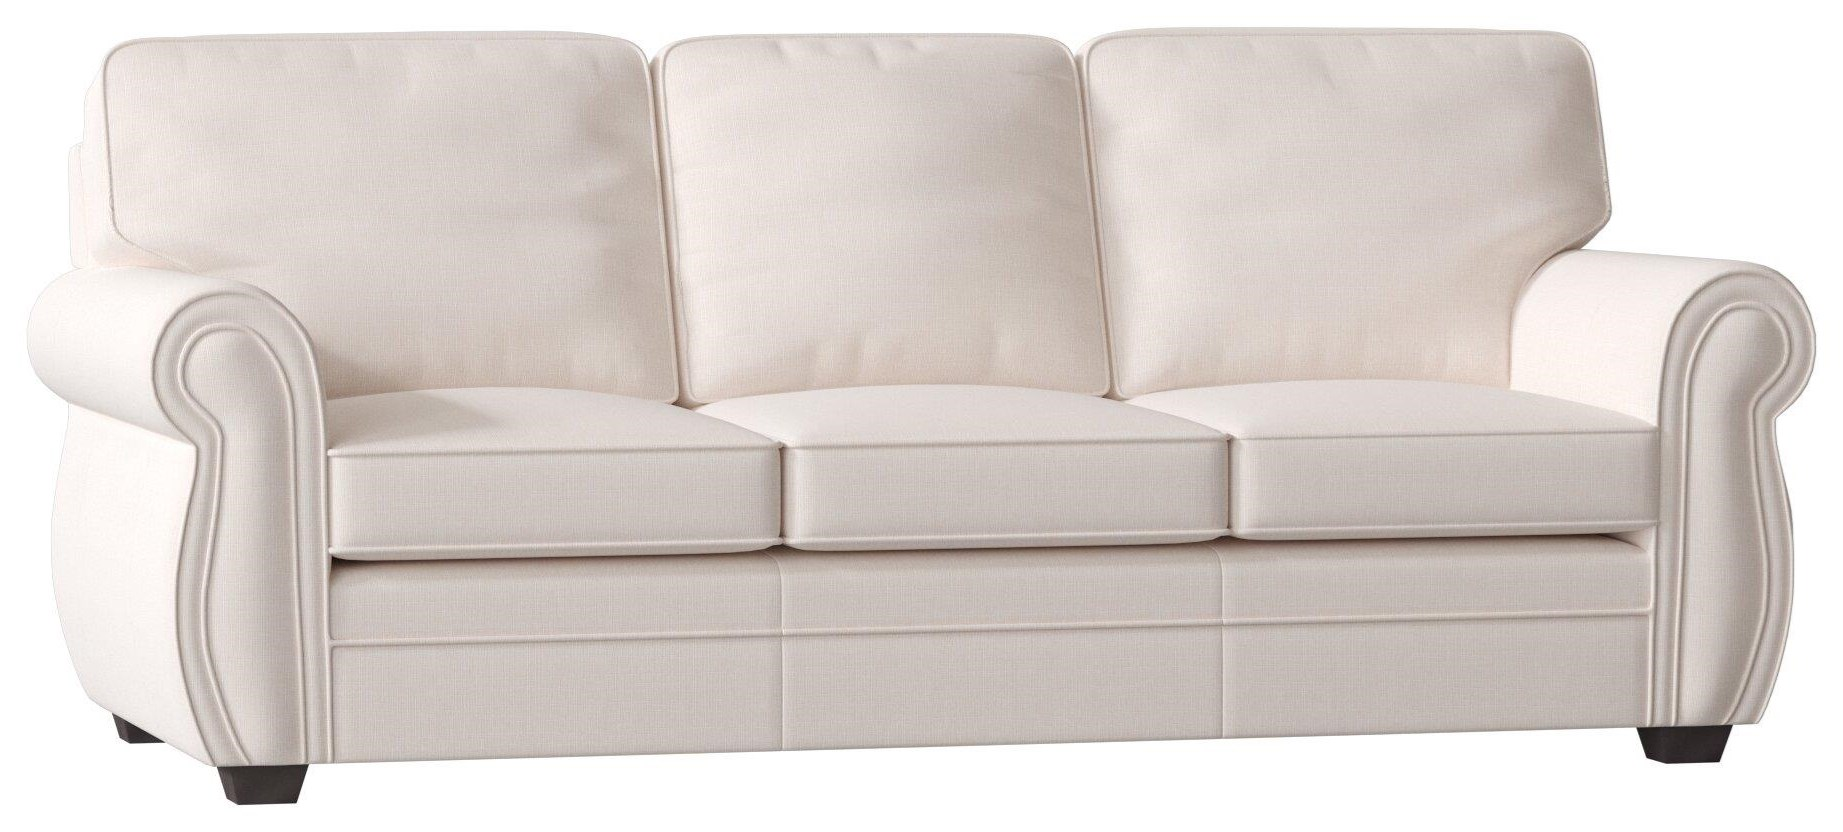 Parker Sofa by Rockwood at Bennett's Furniture and Mattresses